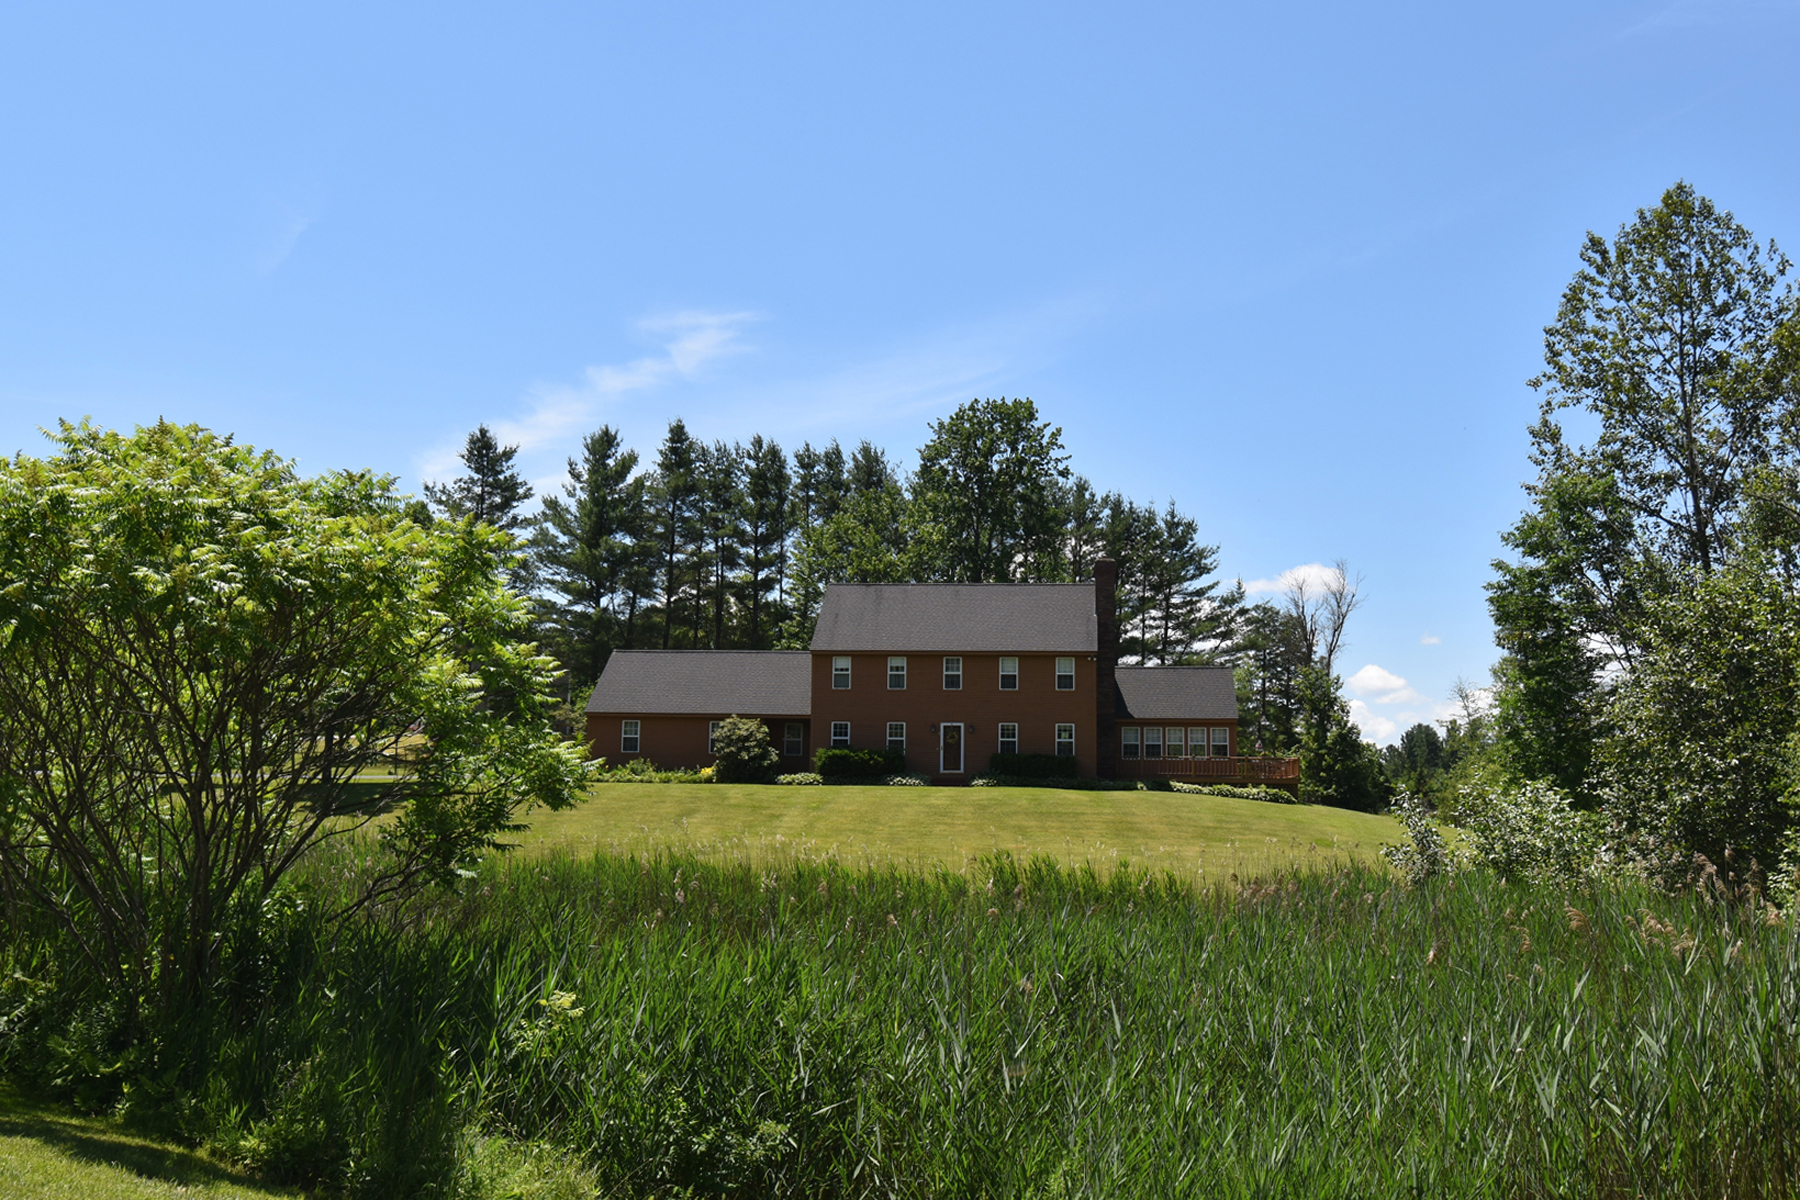 Single Family Homes for Sale at Killington Heights South 436 Hitzel Terr Rutland Town, Vermont 05701 United States